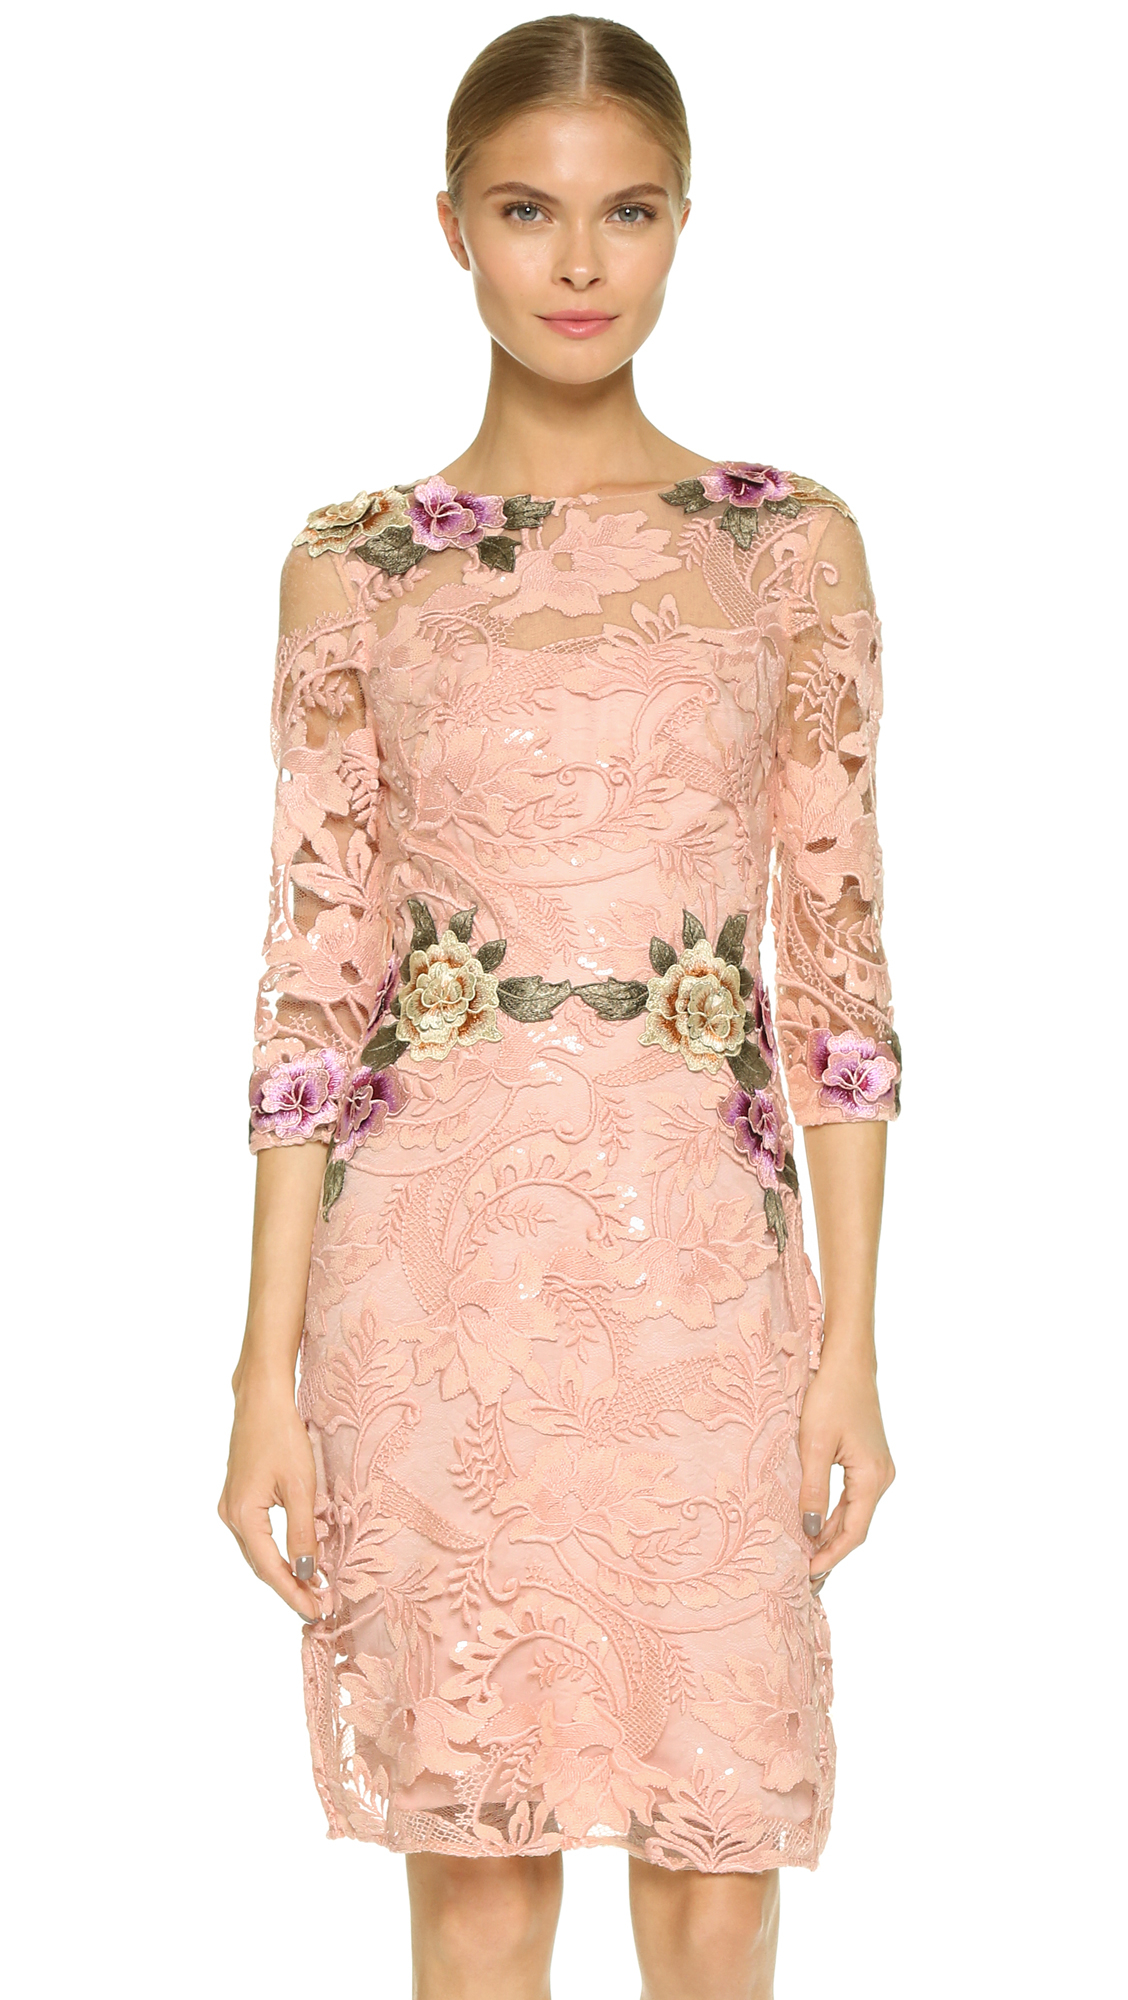 Coral pink cocktail dress